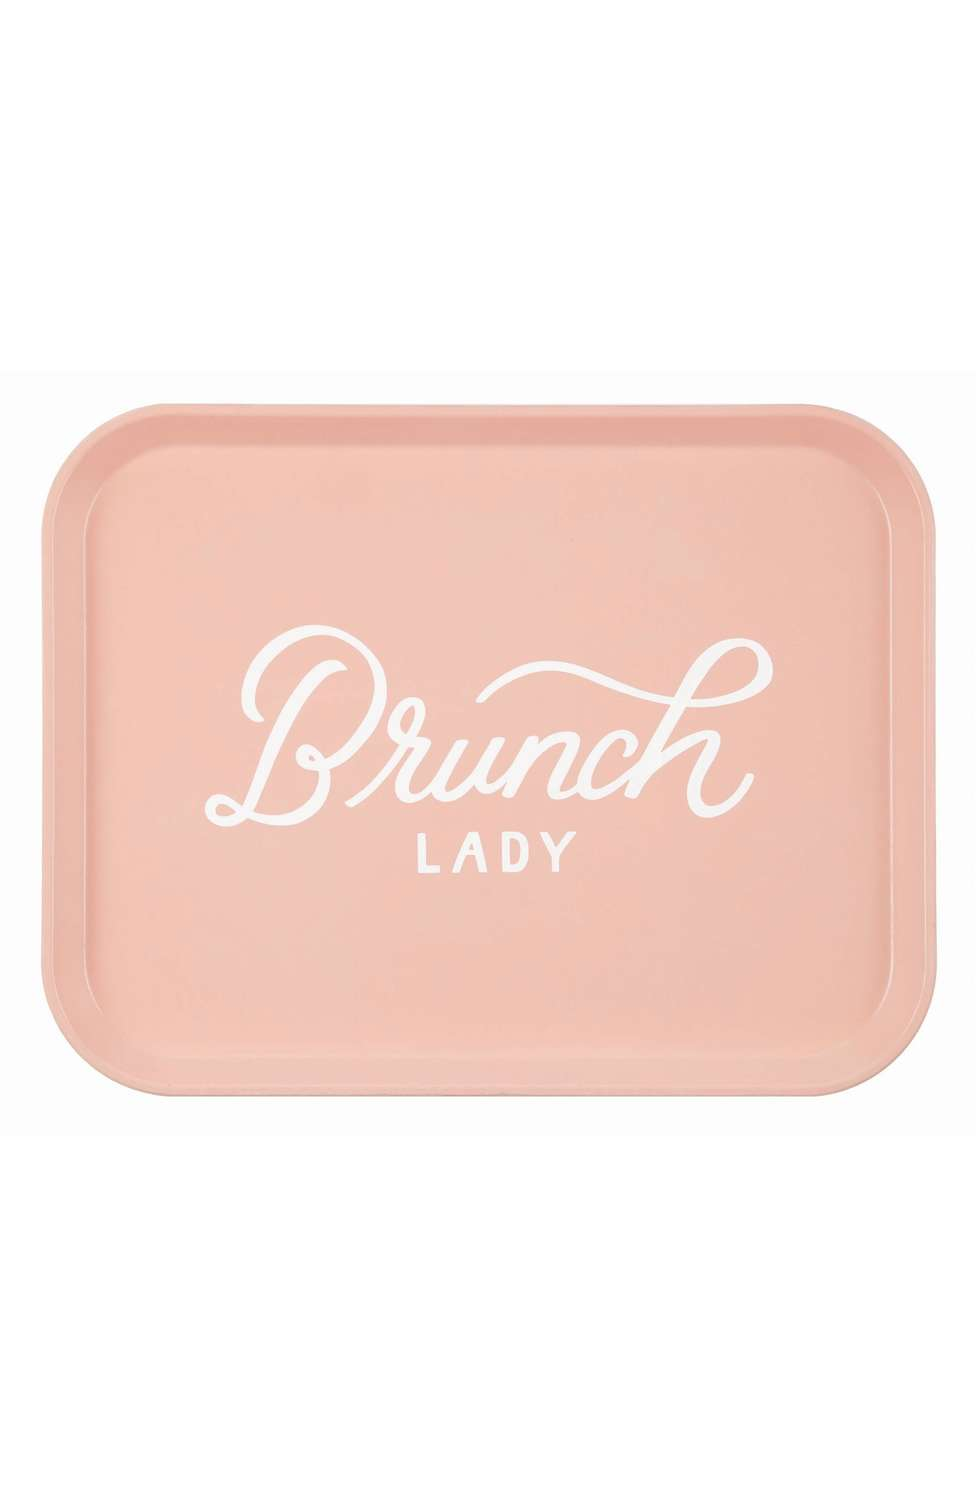 Brunch Lady Tray